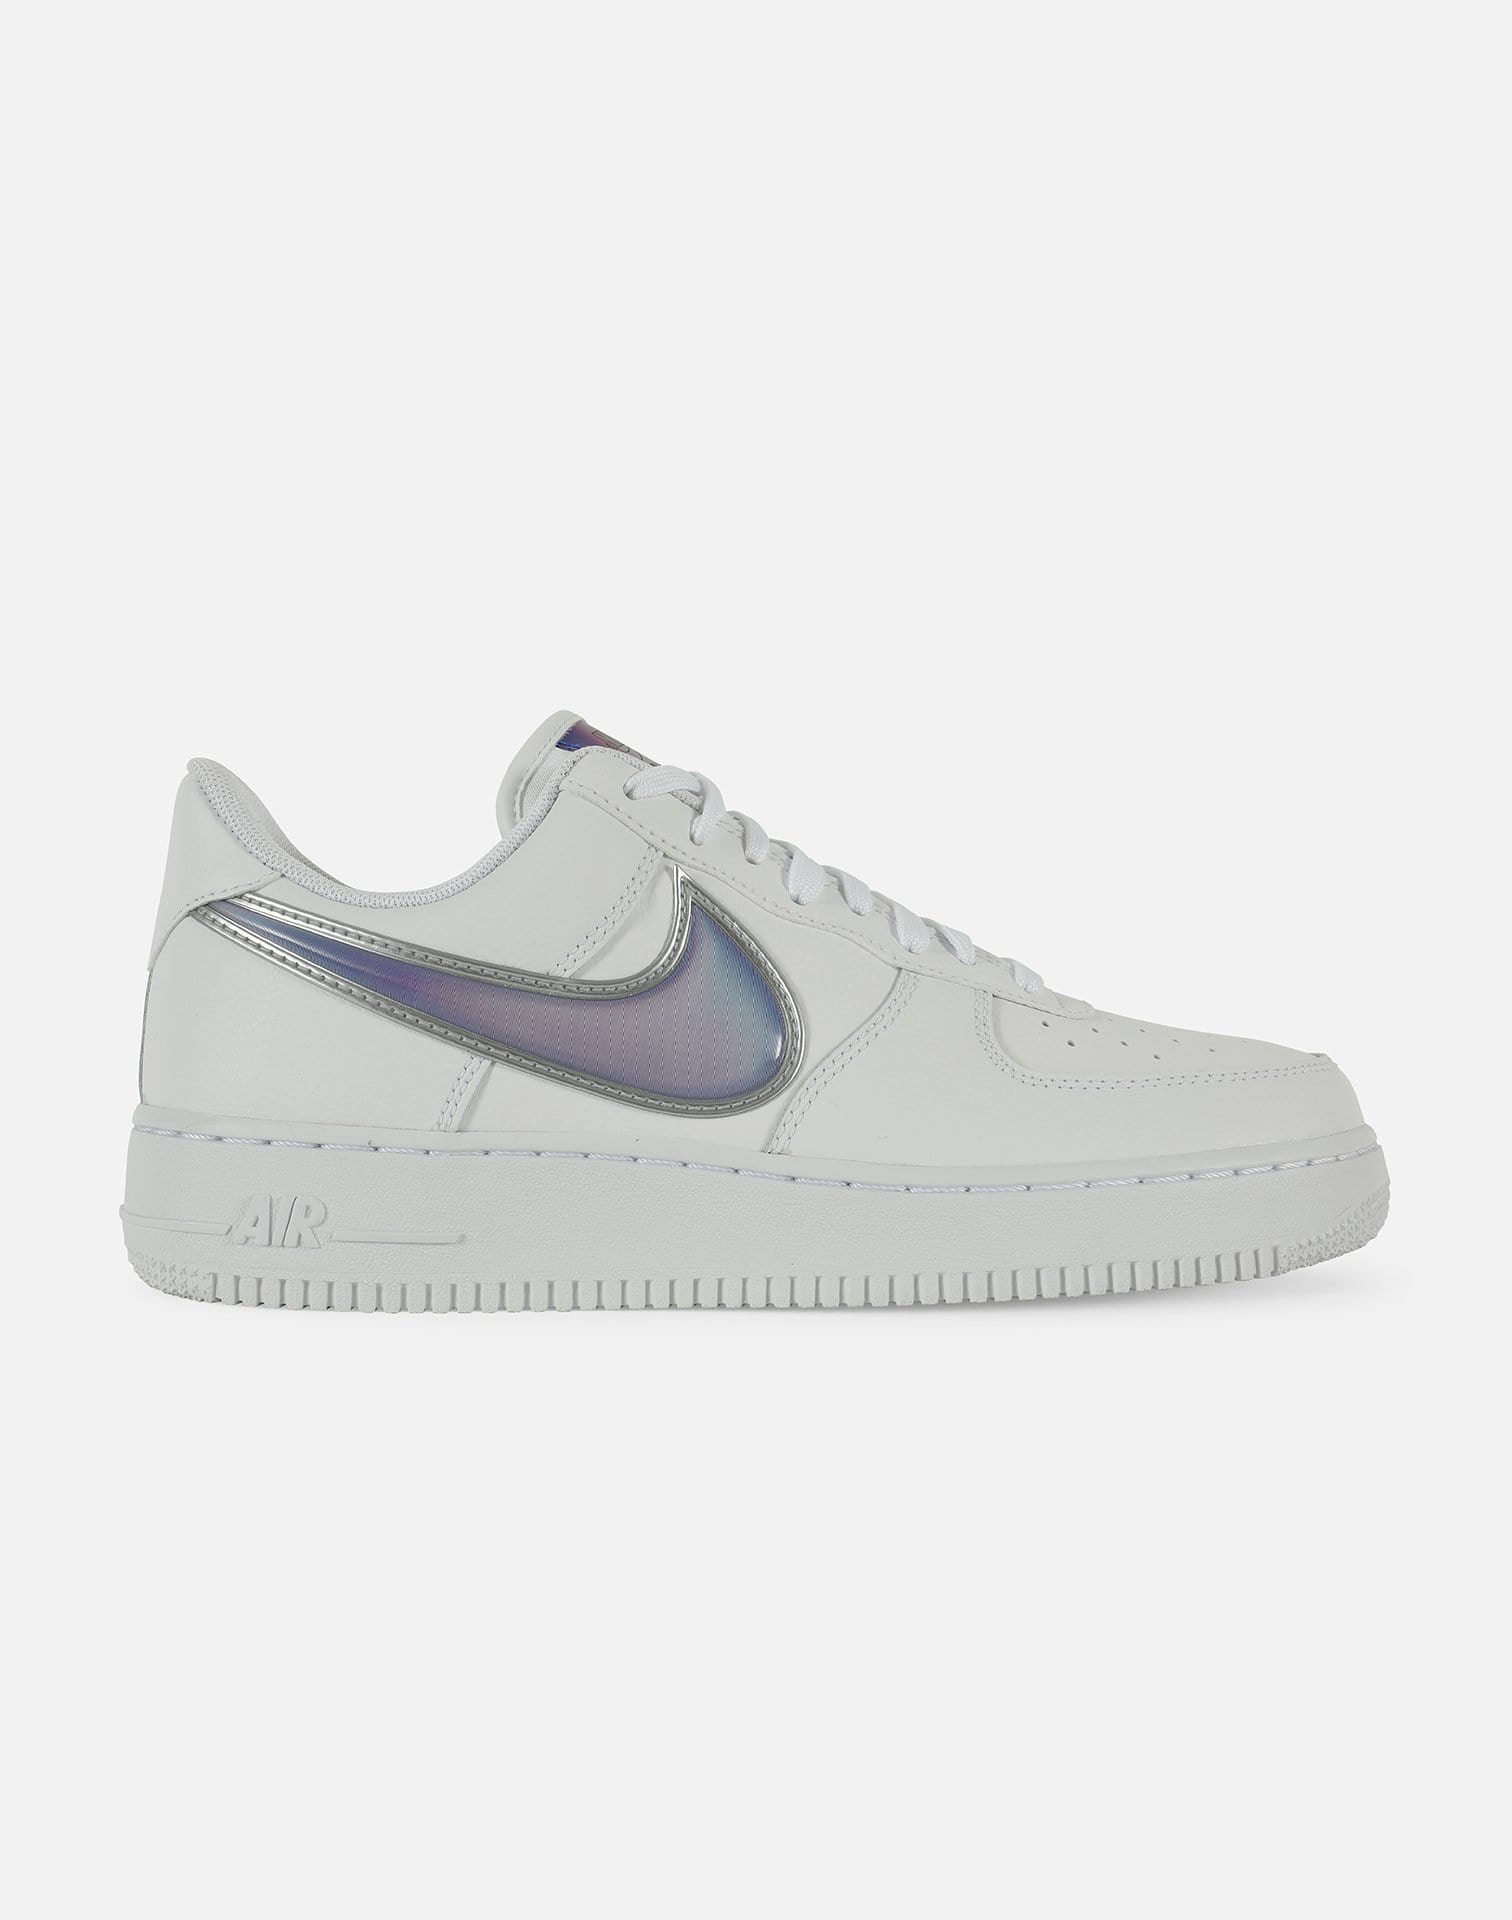 Nike Men's Air Force 1 LV8 Low